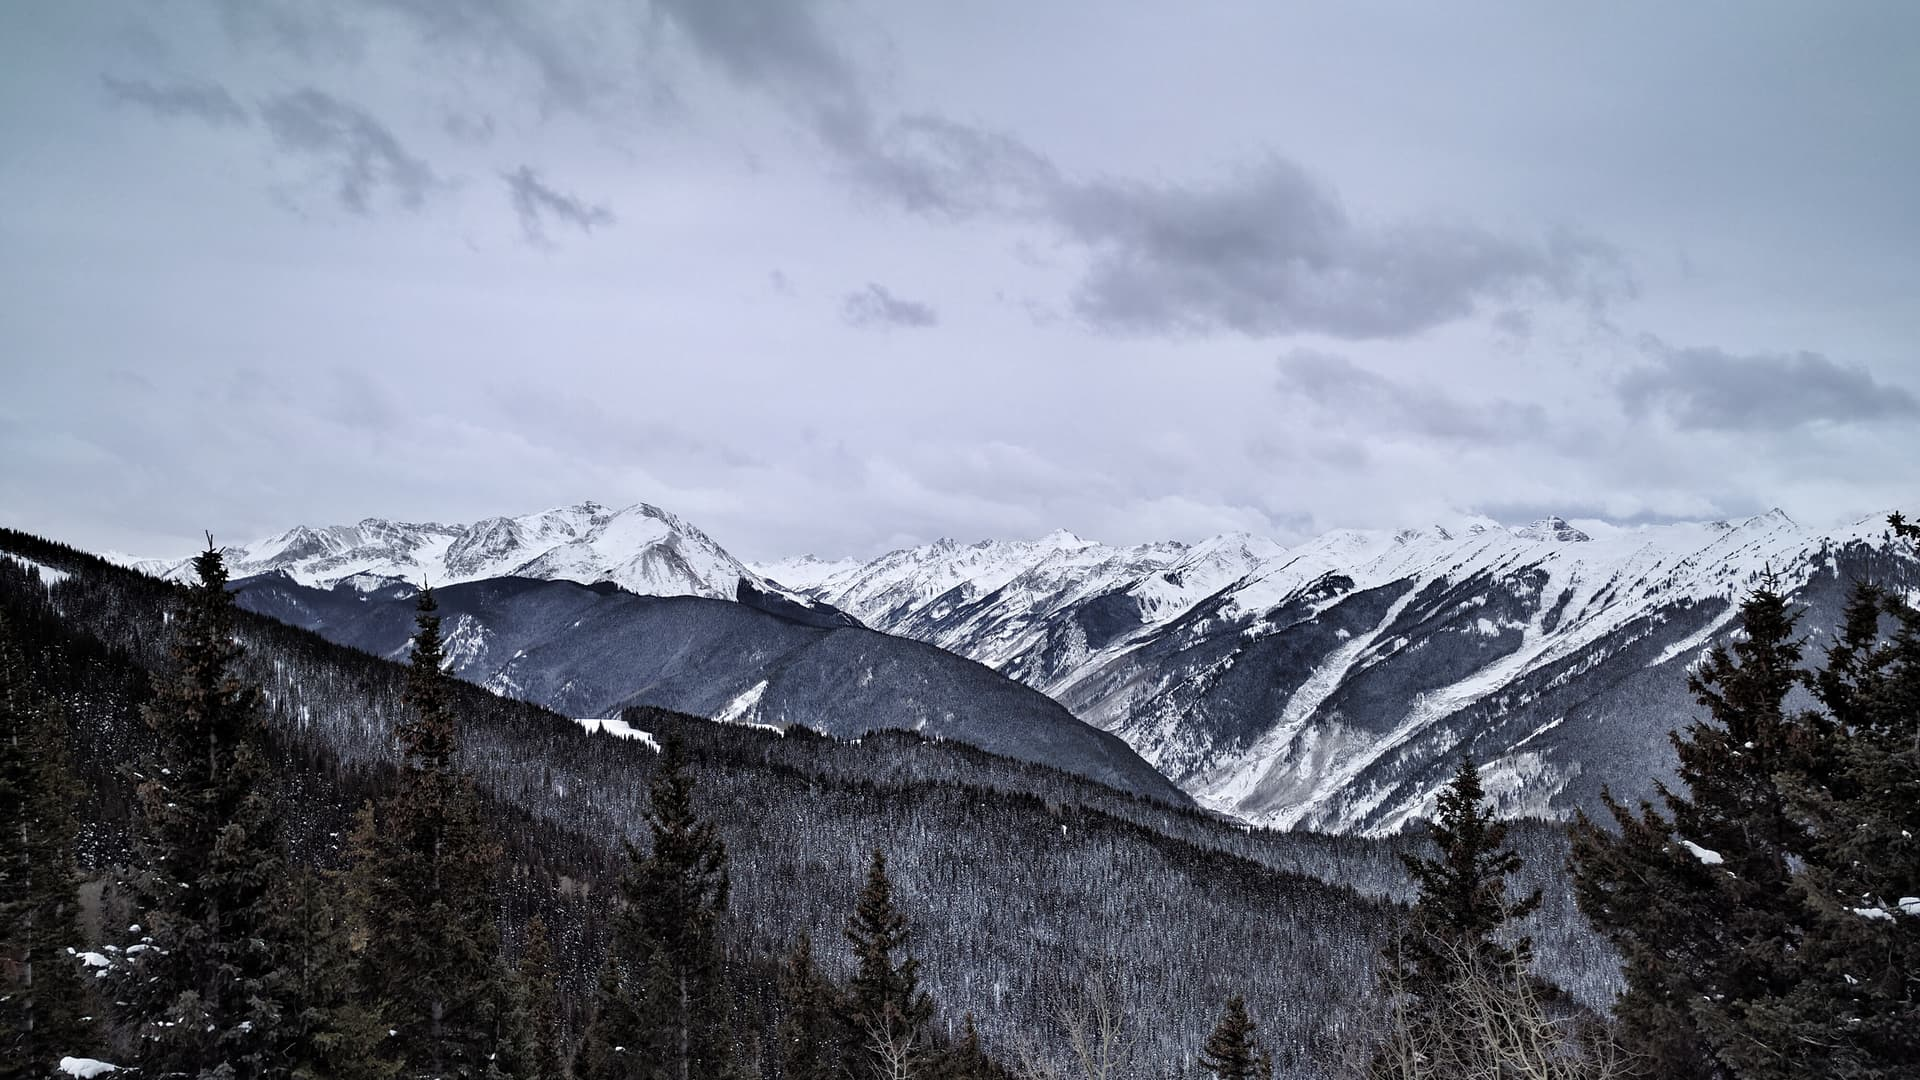 The valley just south of Aspen Peak on a gray, snowy day.